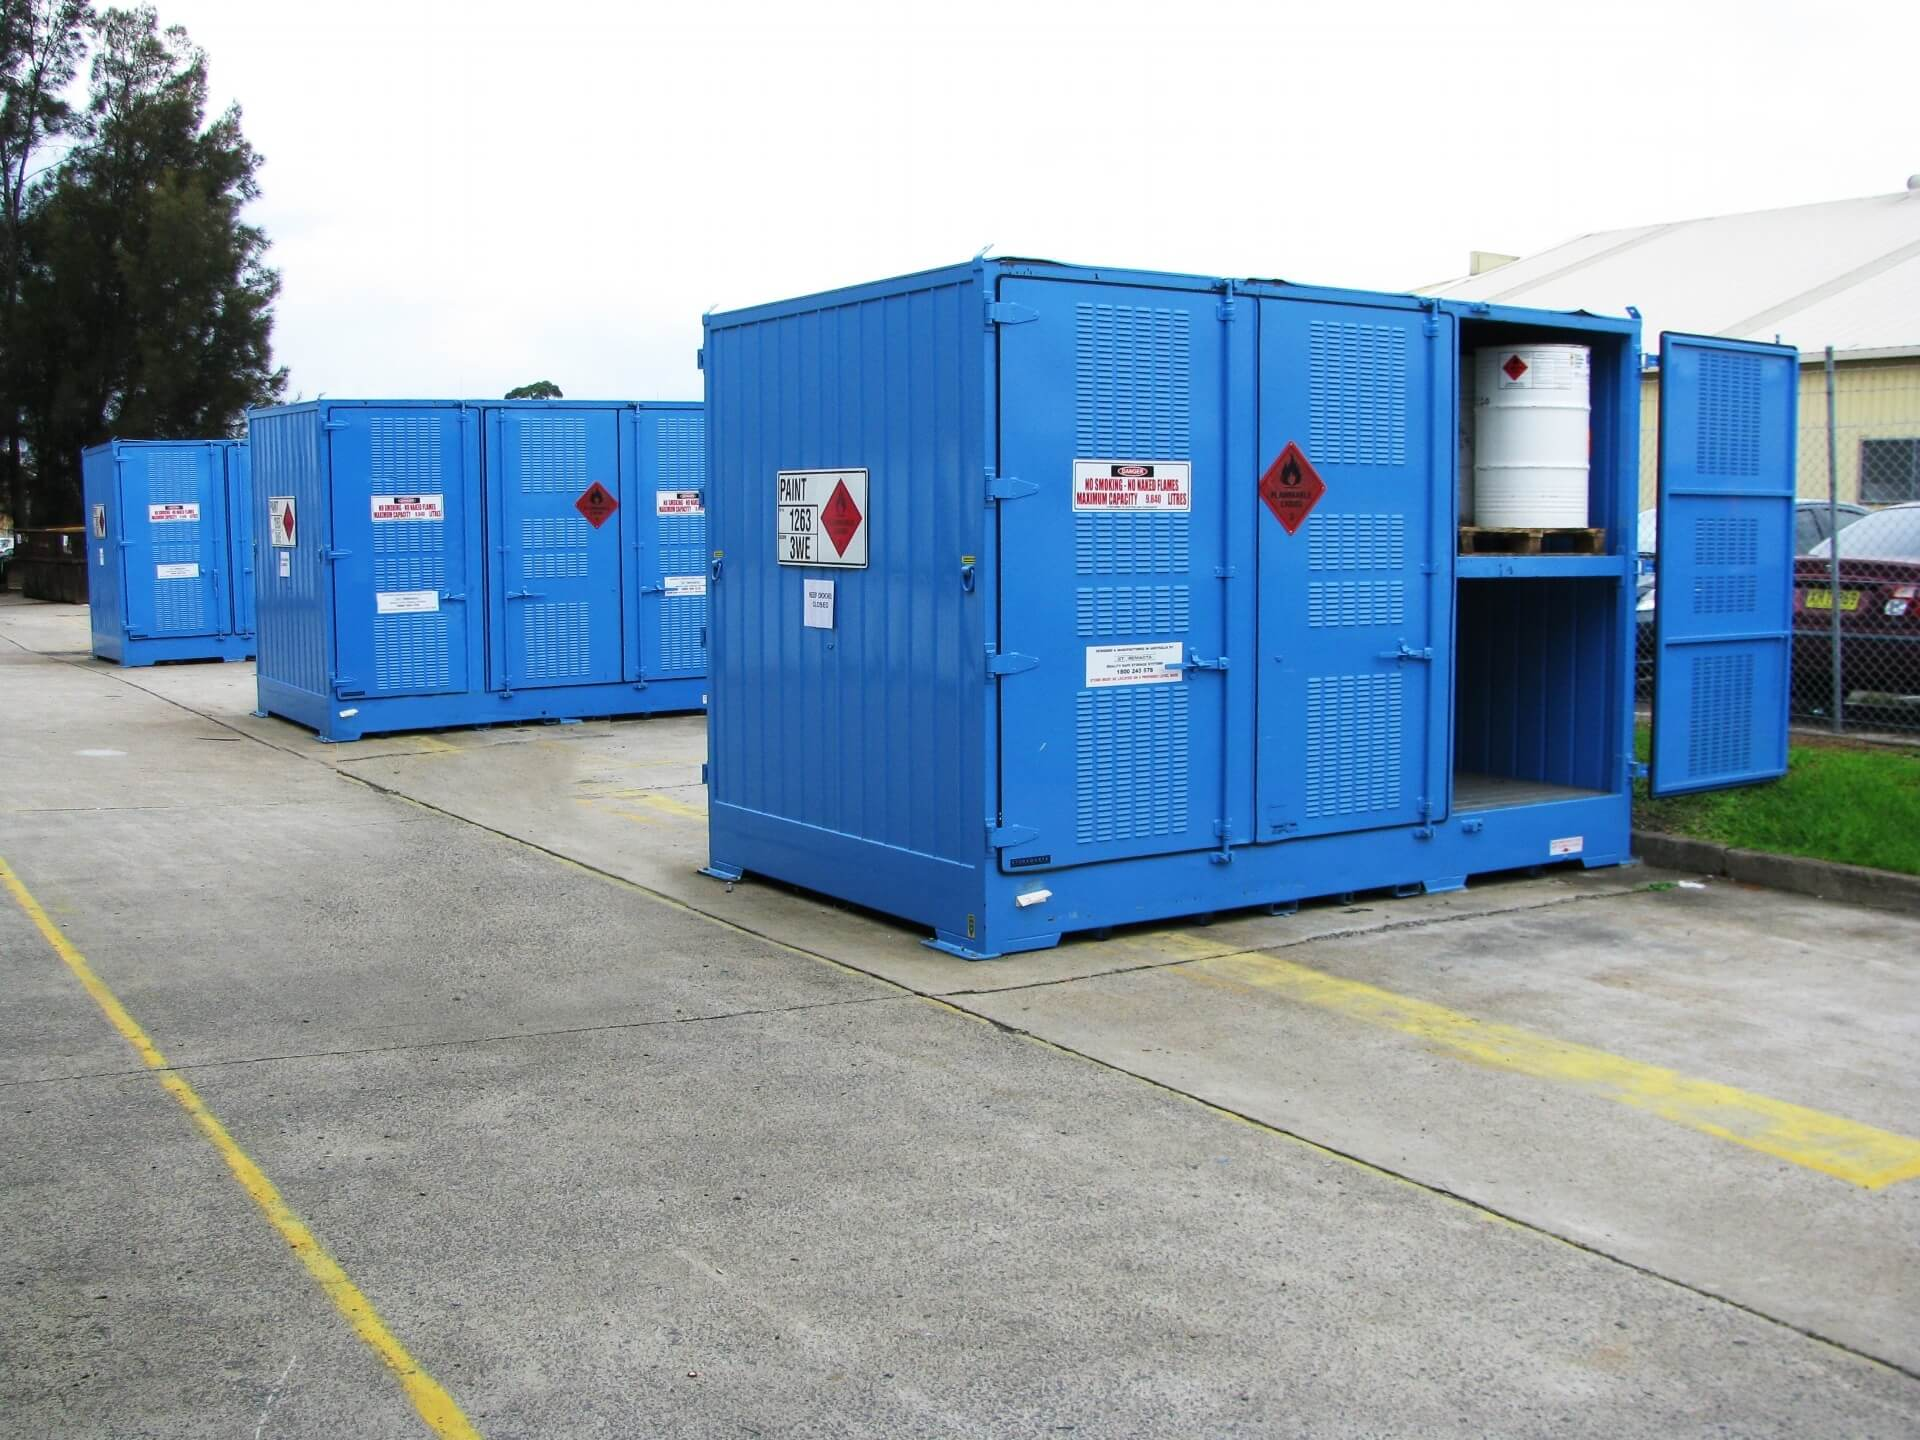 How to store hazardous chemicals legally and safely